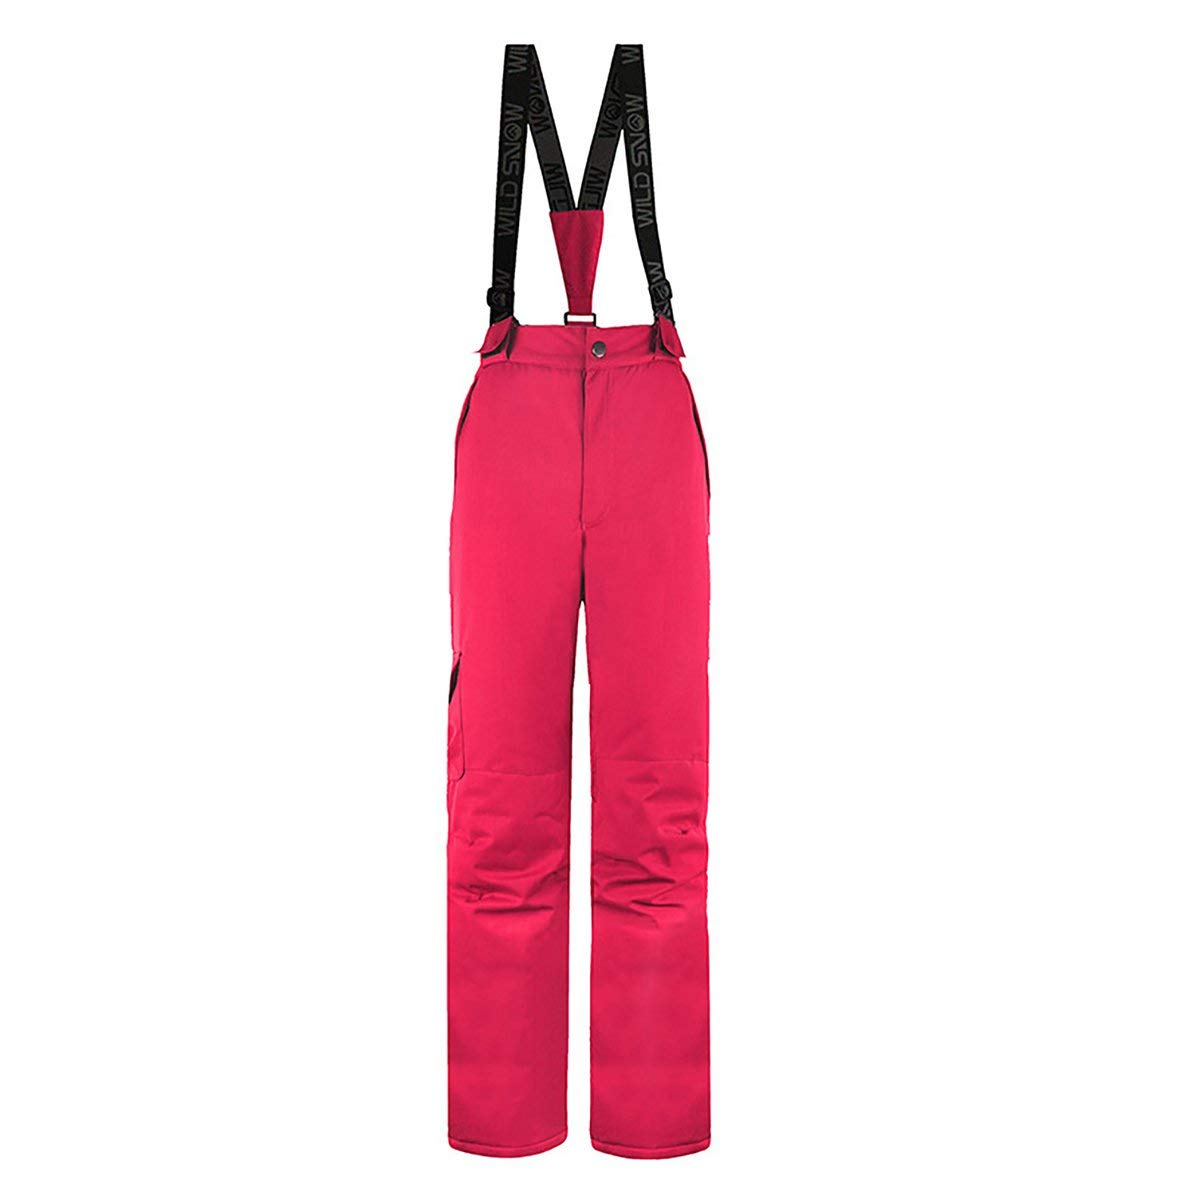 Fluorescent red Large Ladies Ski Climbing Pants Waterproof Windproof Warm Insulated